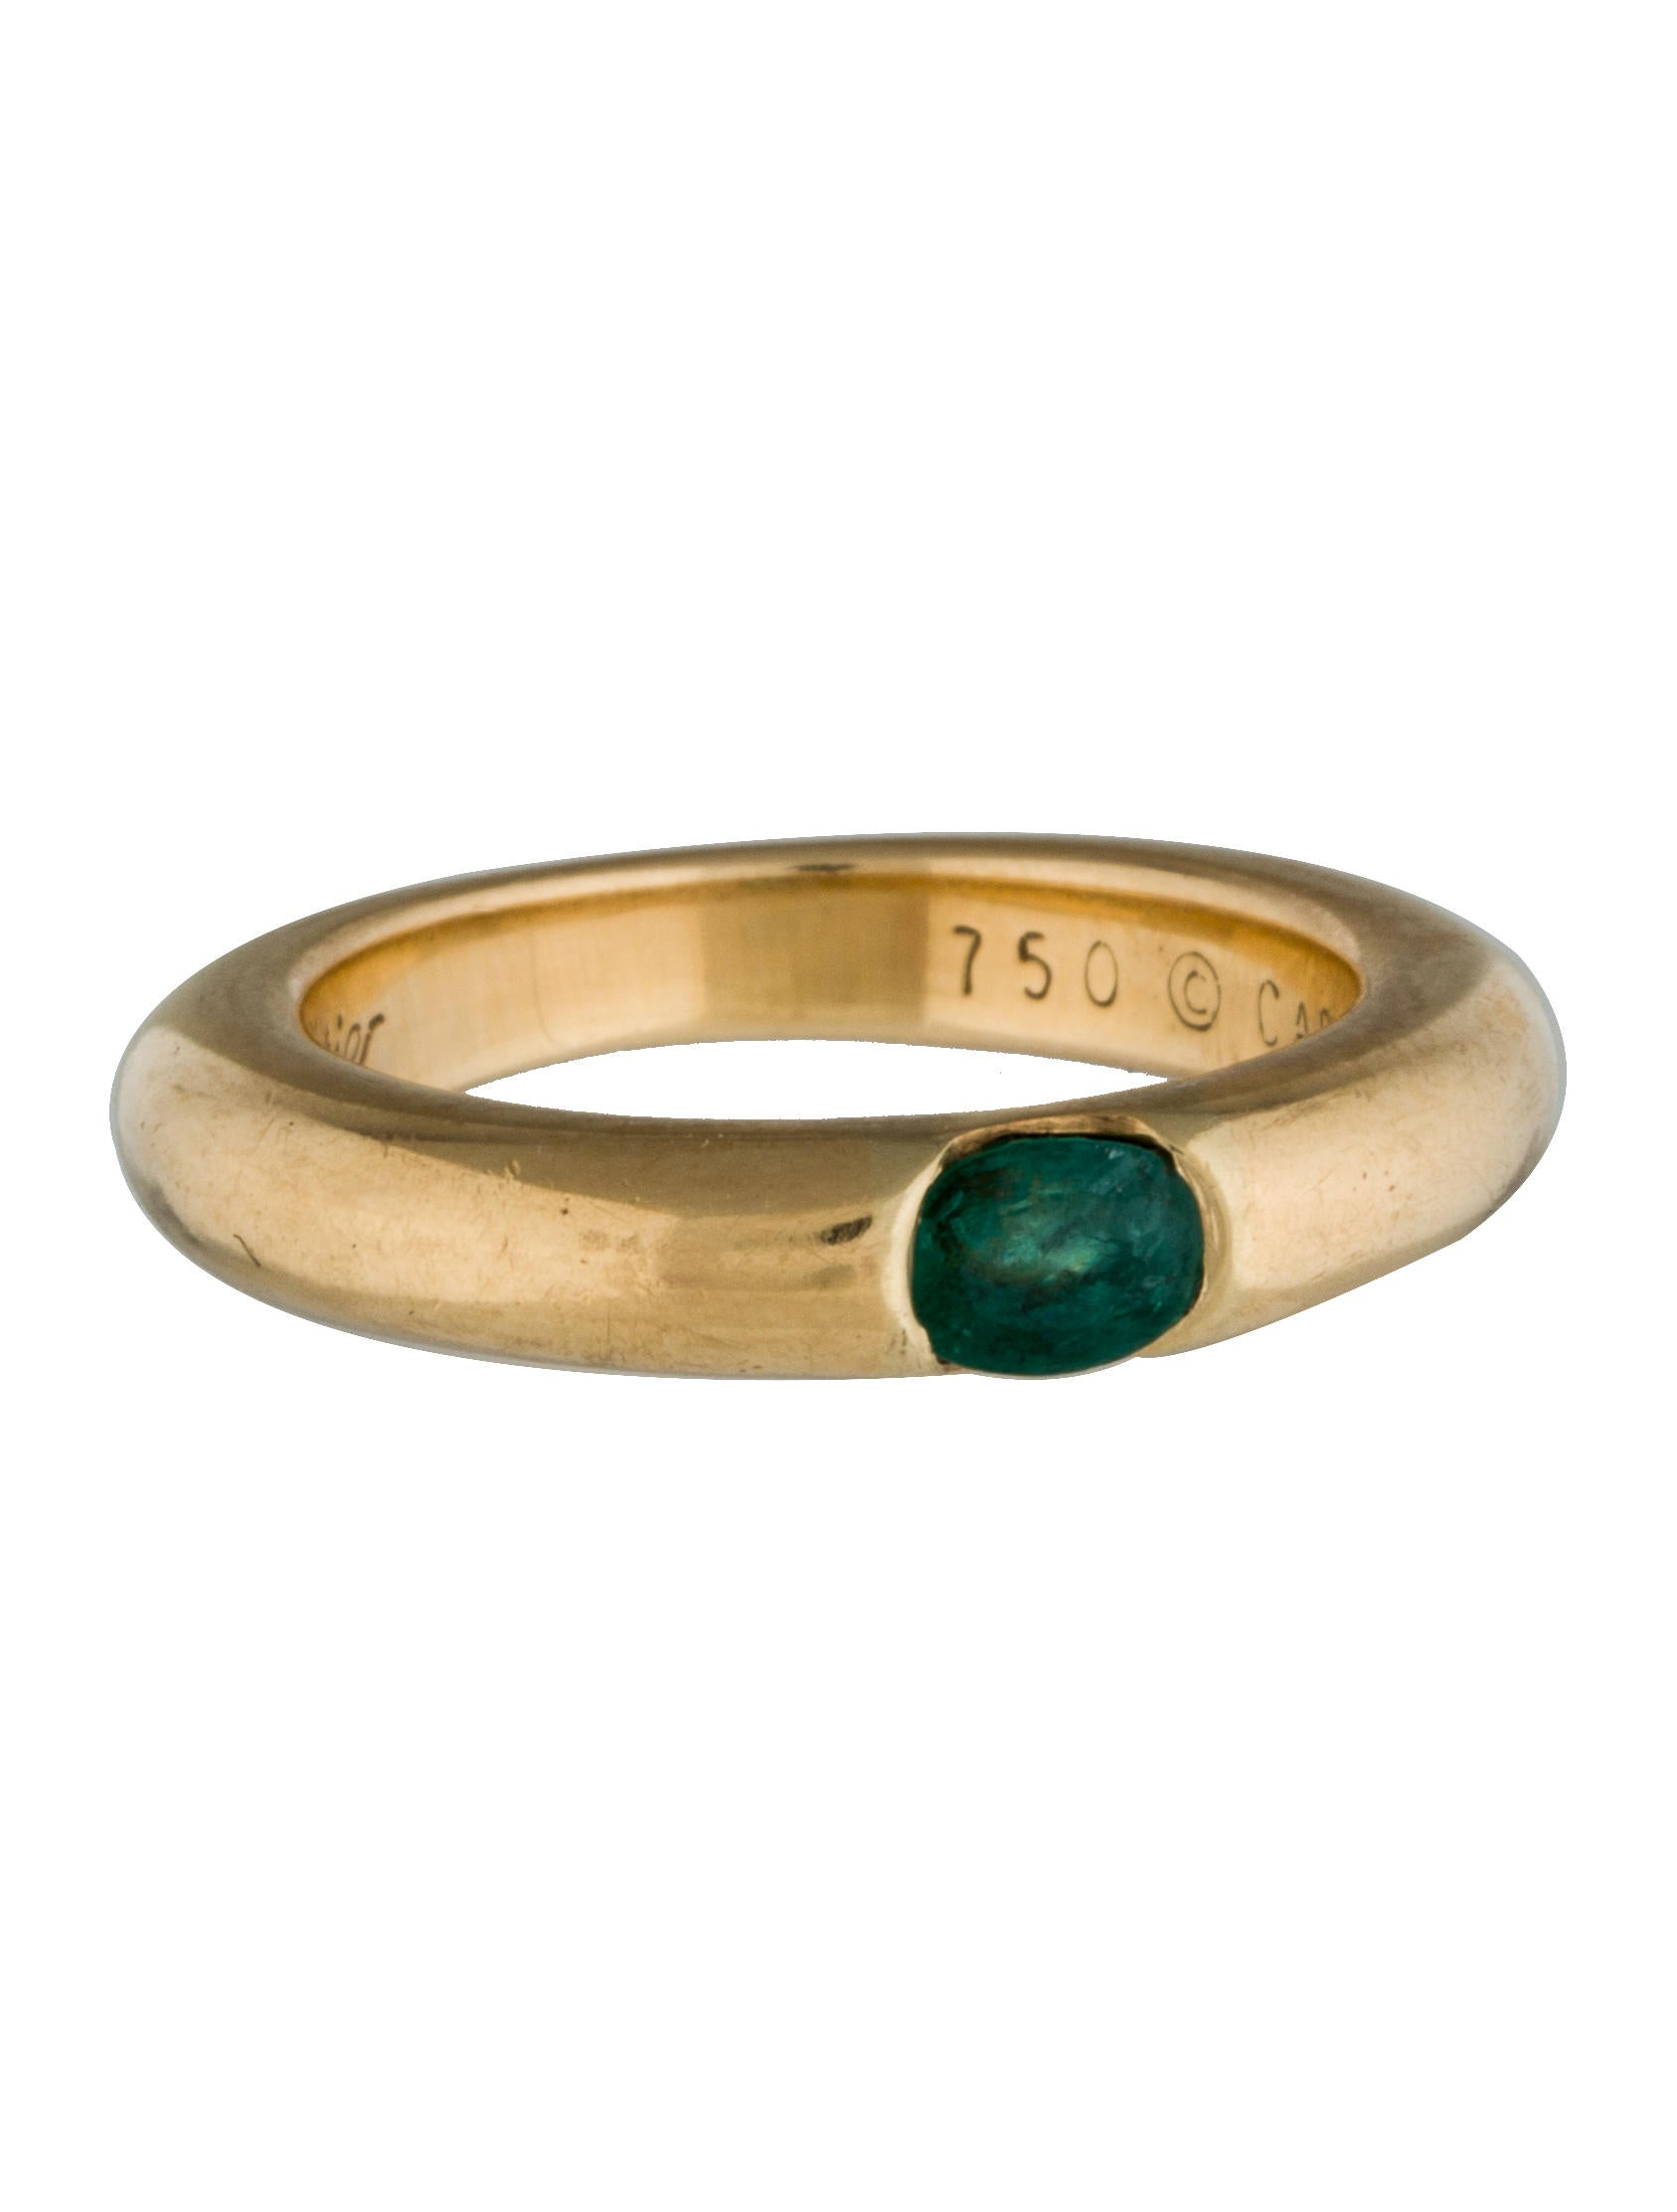 high the etourdissant emerald tourdissant jewelry article vogue cartier collection